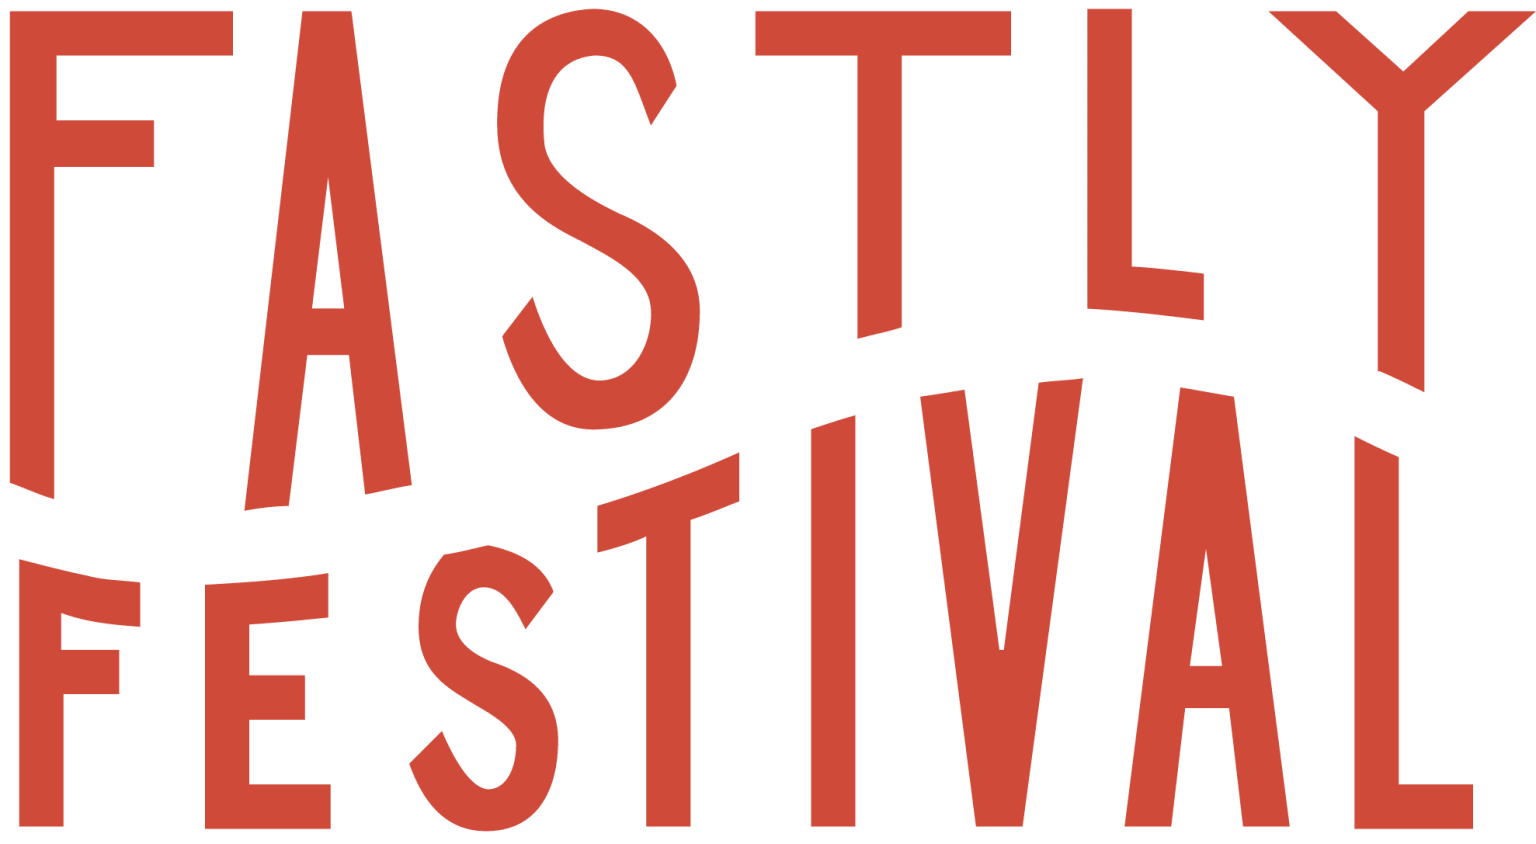 Fastly Festival